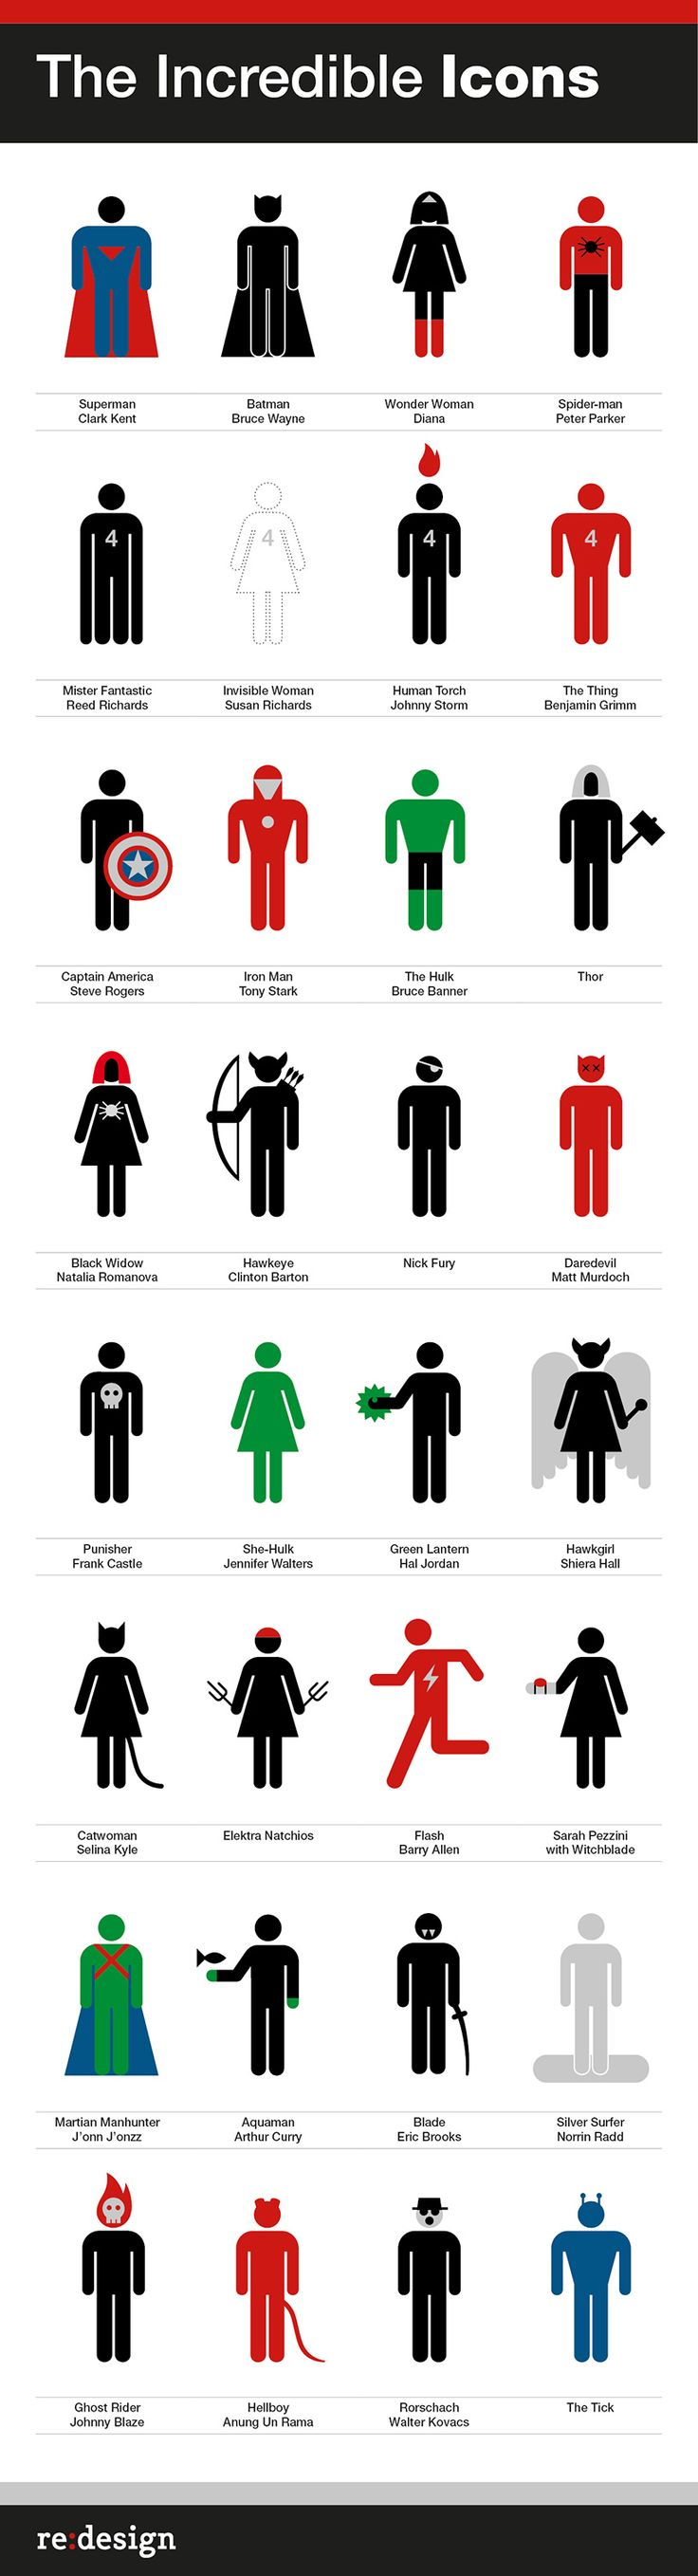 Íconos superheróicos de Re:design